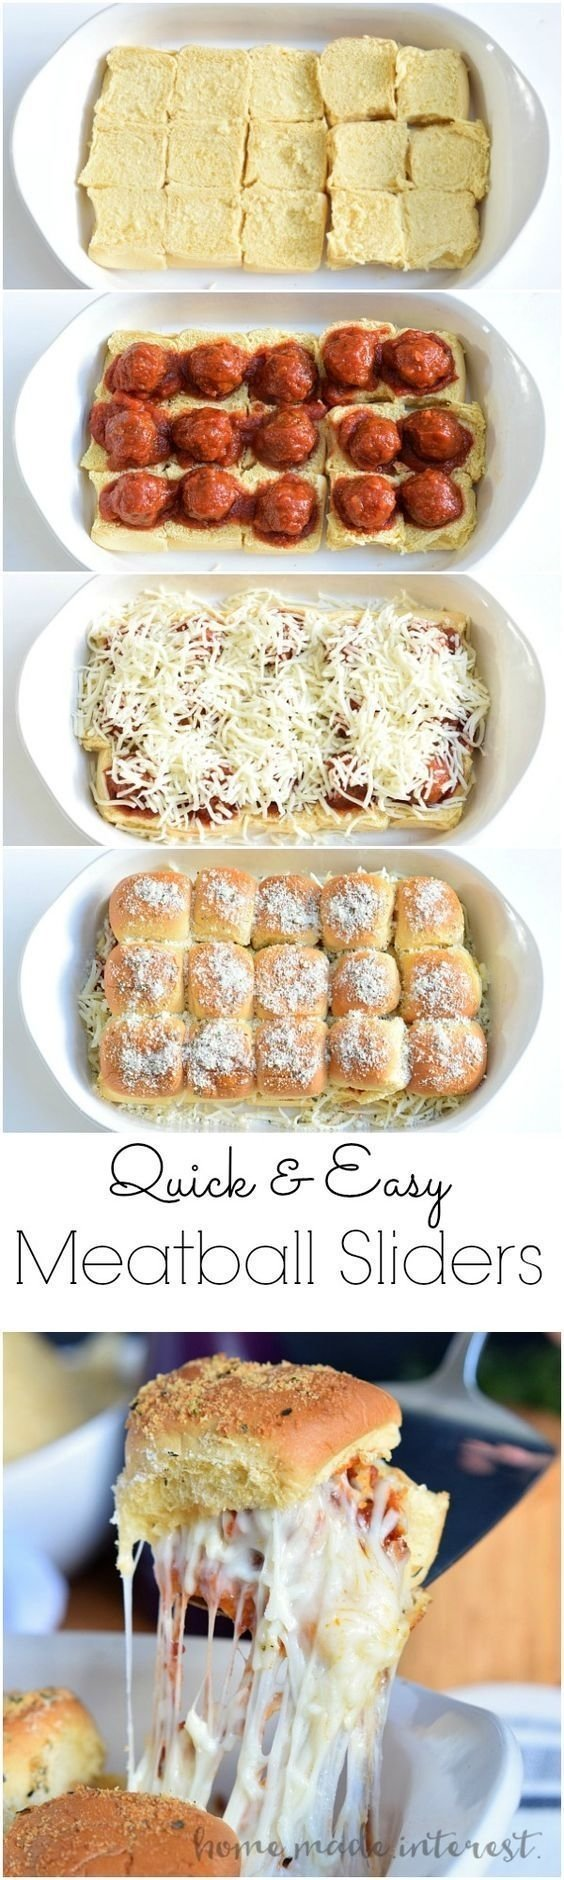 10 Stunning Simple Dinner Ideas For Family 88 best pizza images on pinterest breakfast kitchens and cooking food 2020